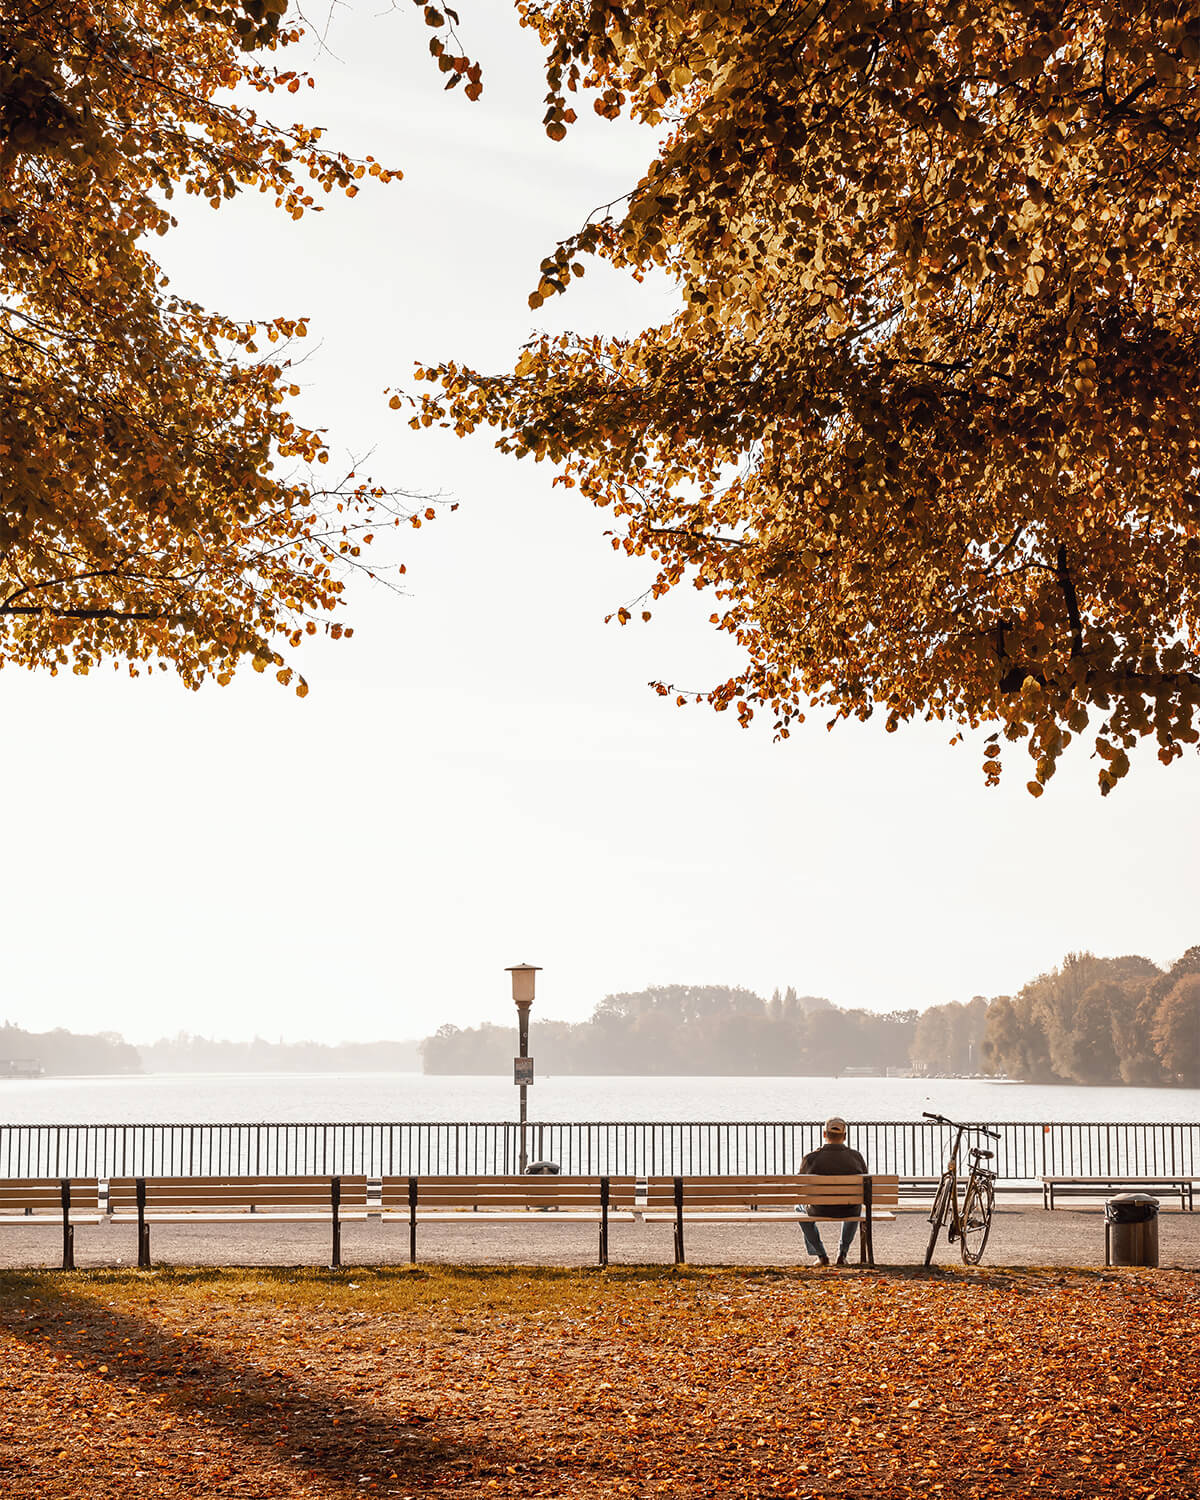 Herbst am Maschsee in Hannover